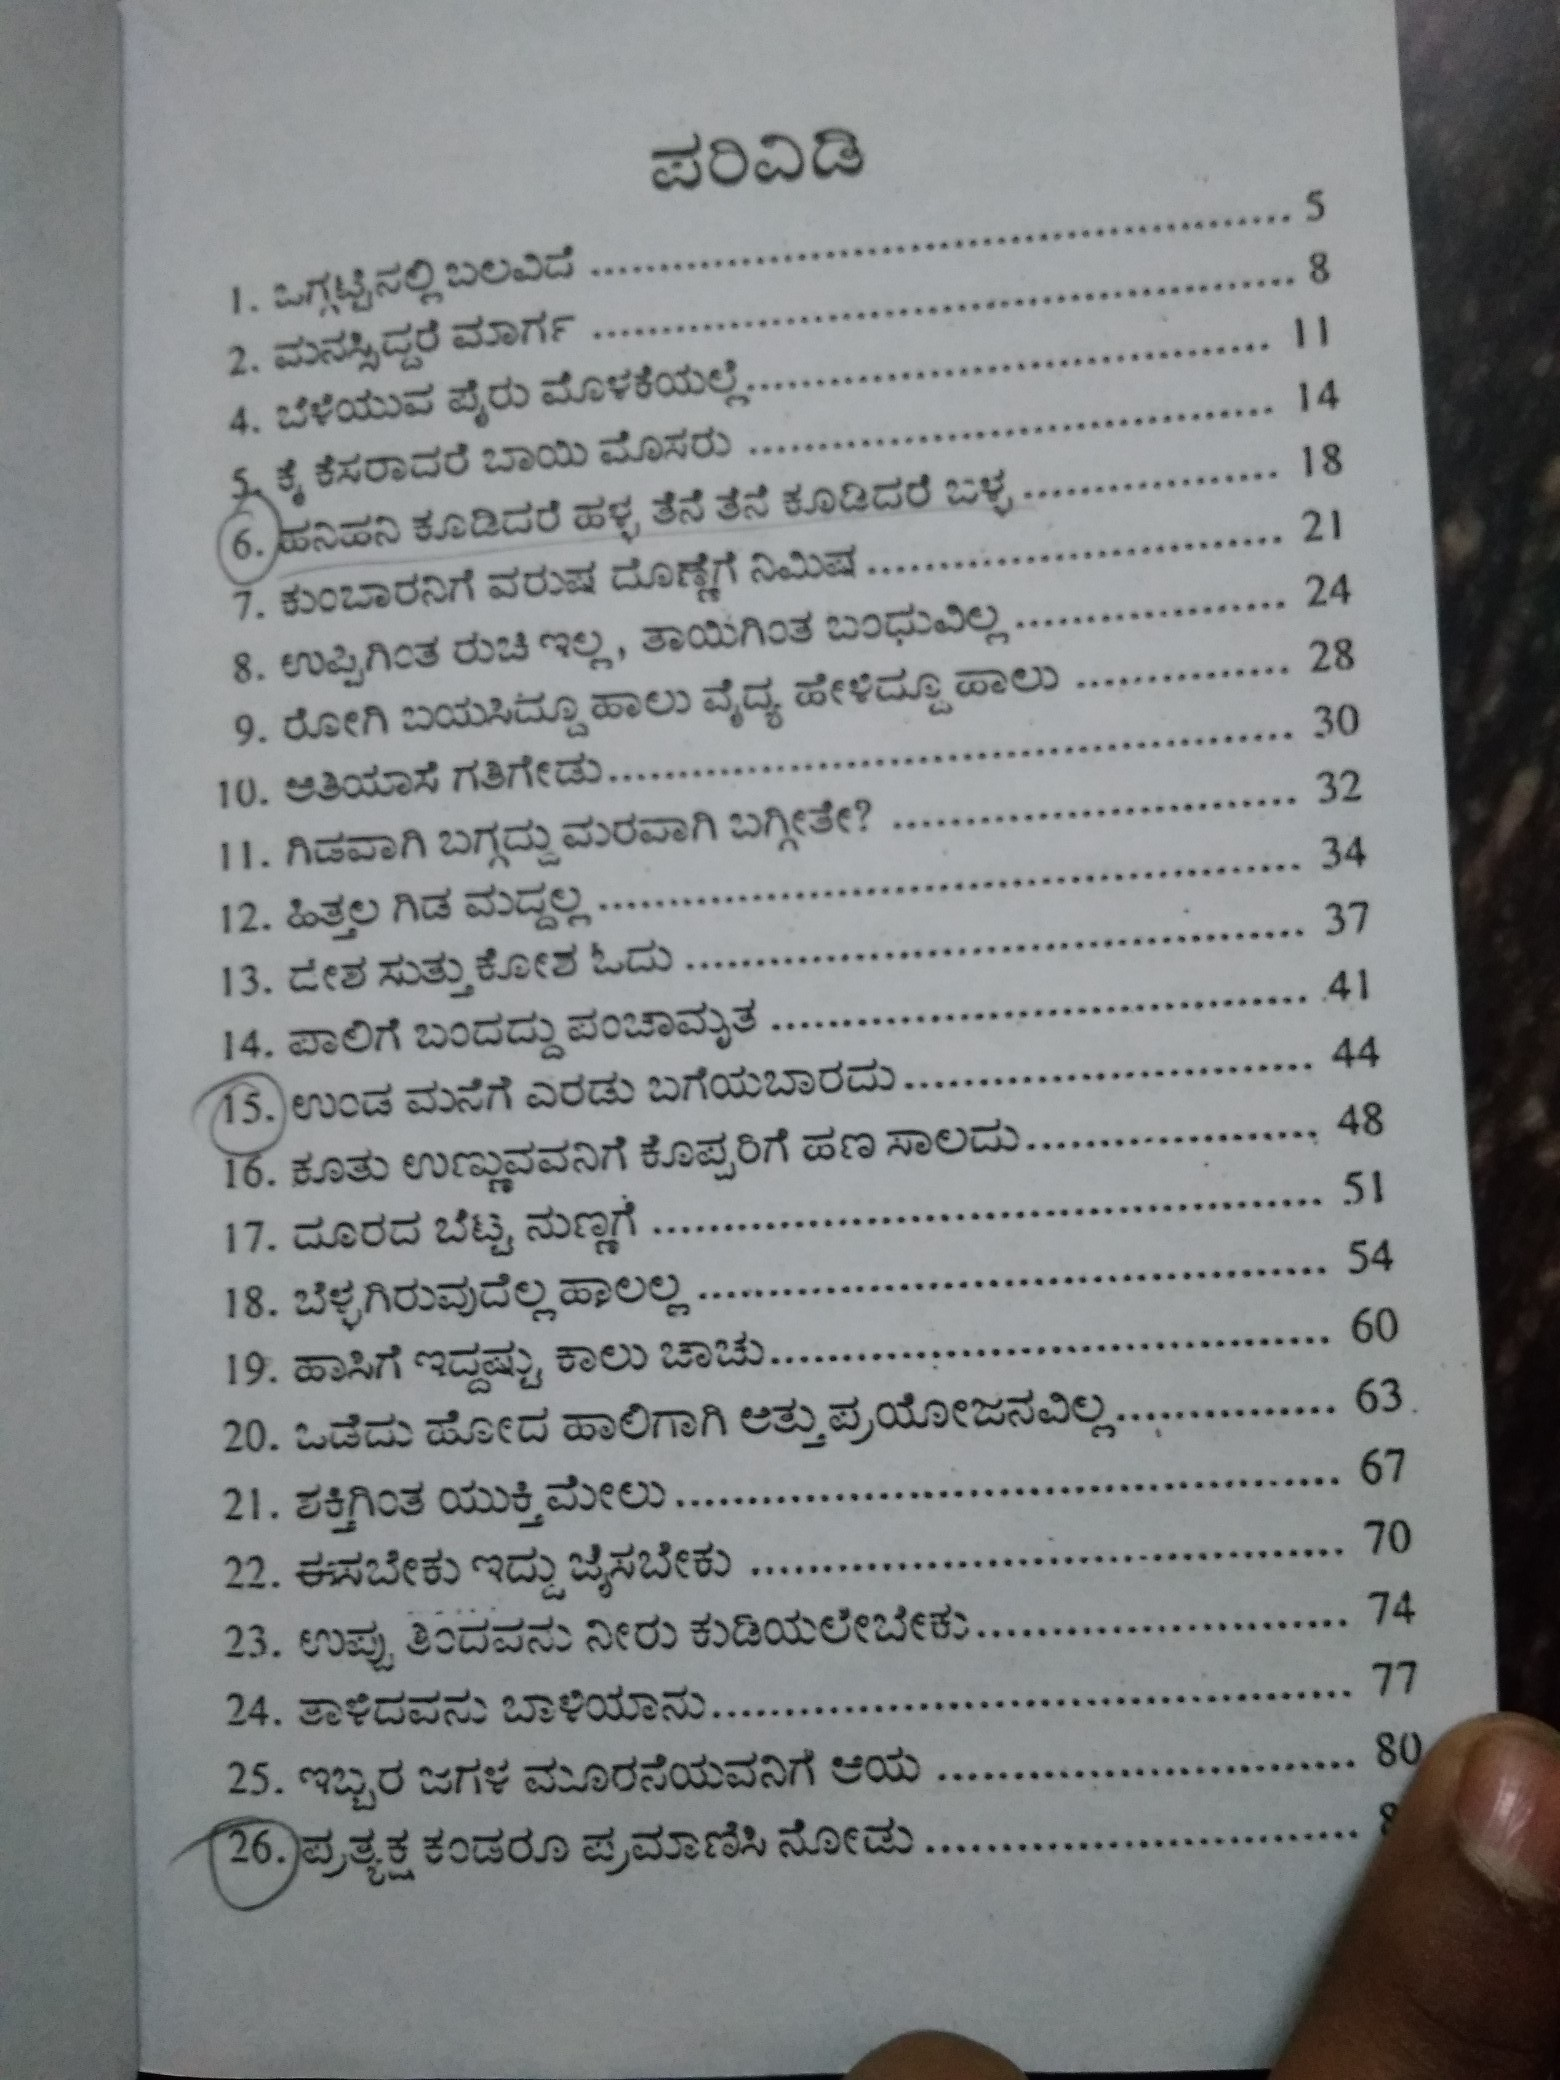 anybody know gaade proverbs in Kannada meaning i want only10